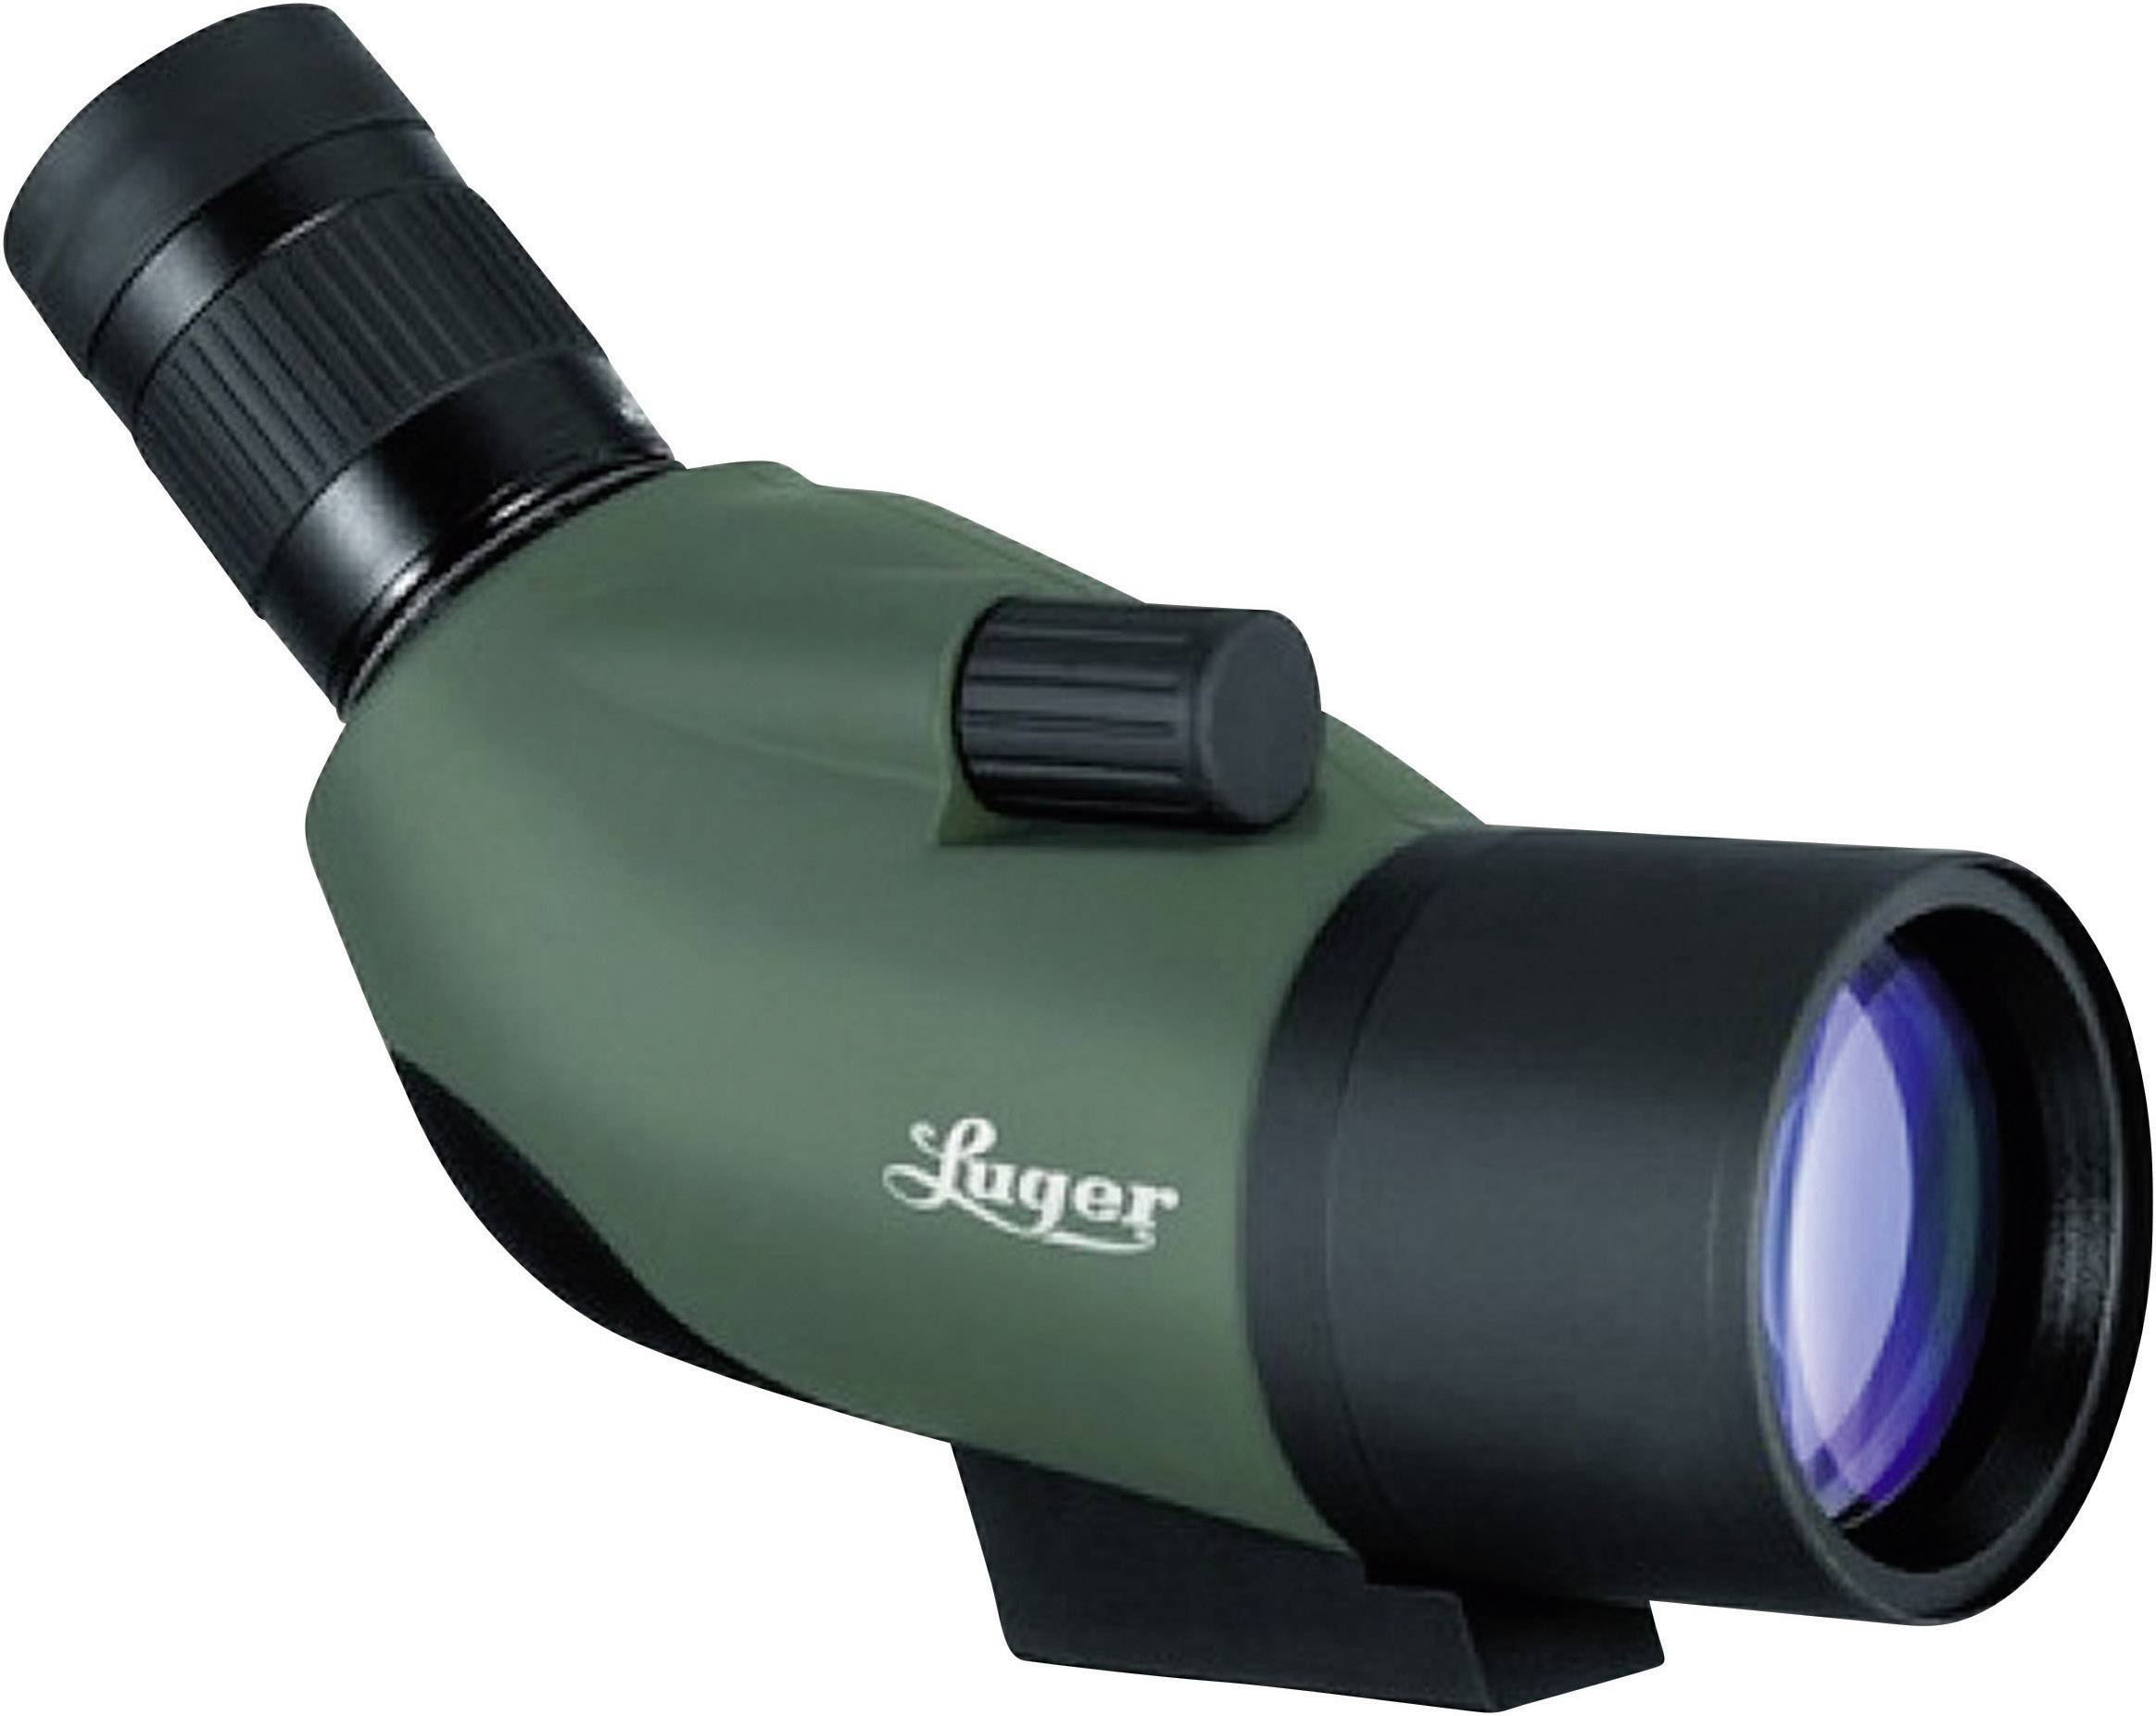 Bushnell legend ultra hd ab u ac de